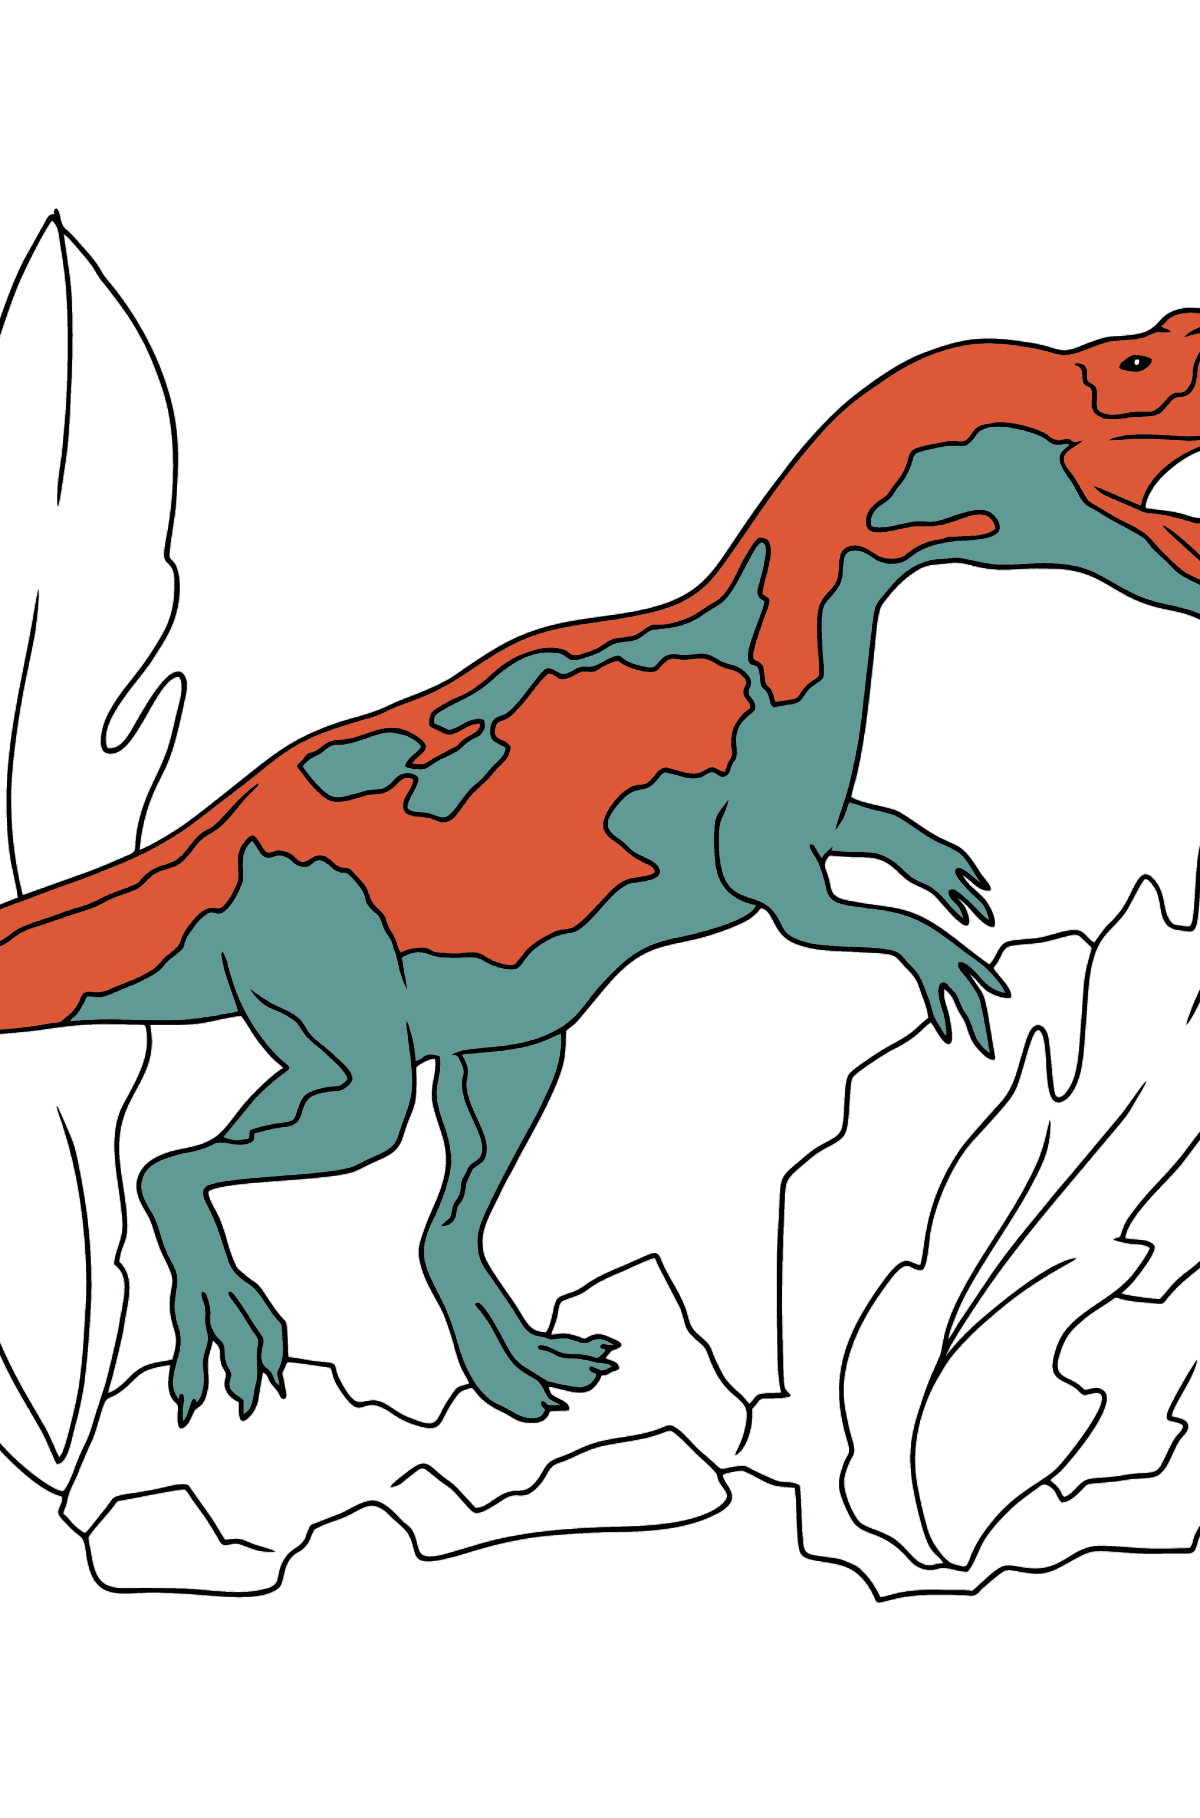 Coloring Page - A Dinosaur is Looking for Food - Coloring Pages for Kids